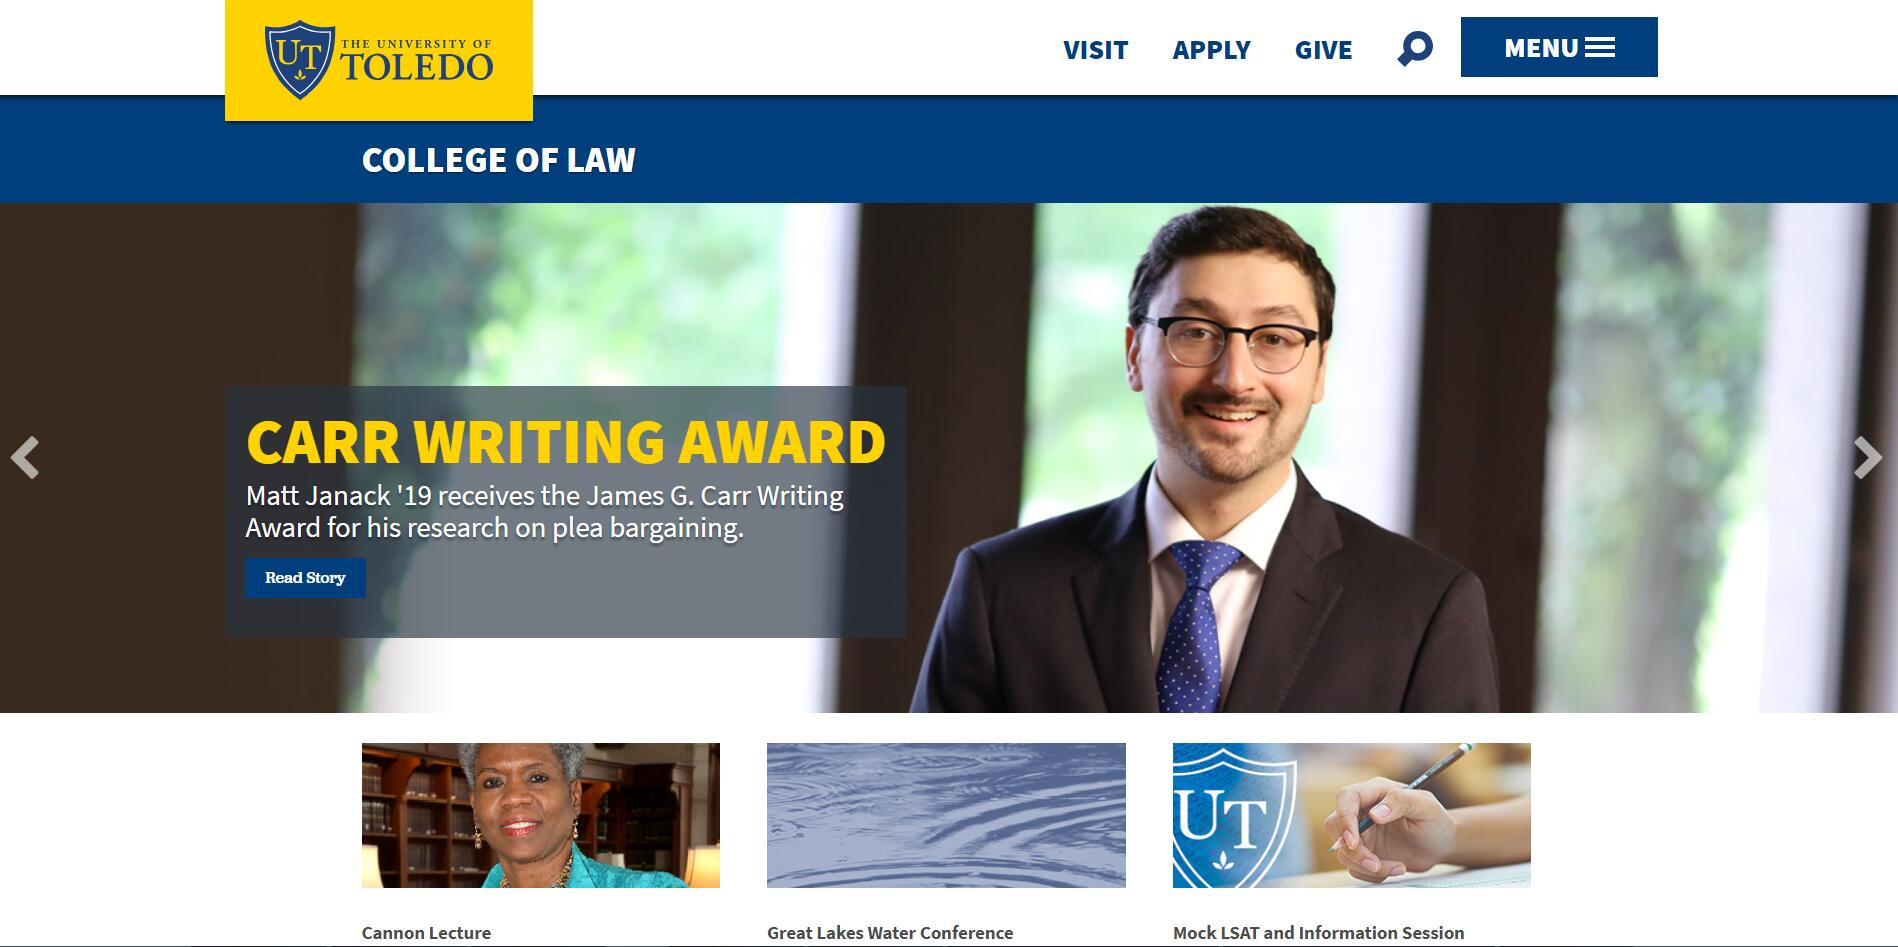 The College of Law at University of Toledo